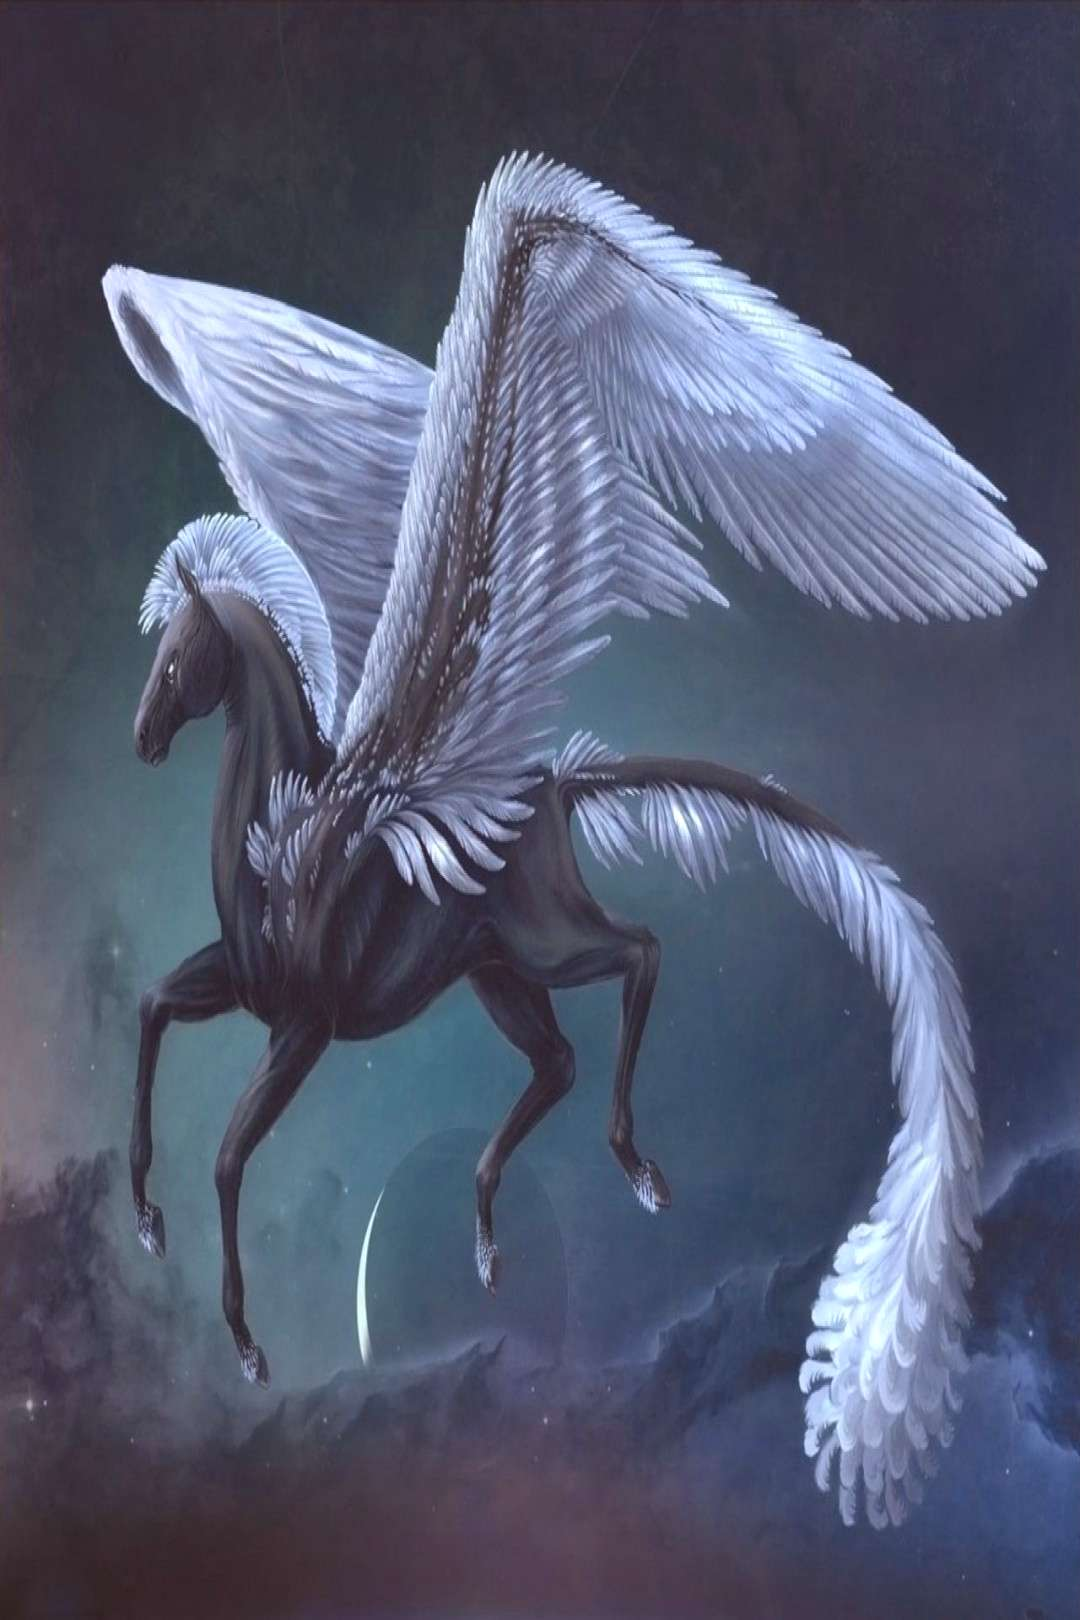 White Pegasus Wallpapers High Quality 9 Awesome White Pegasus Wallpapers High Quality